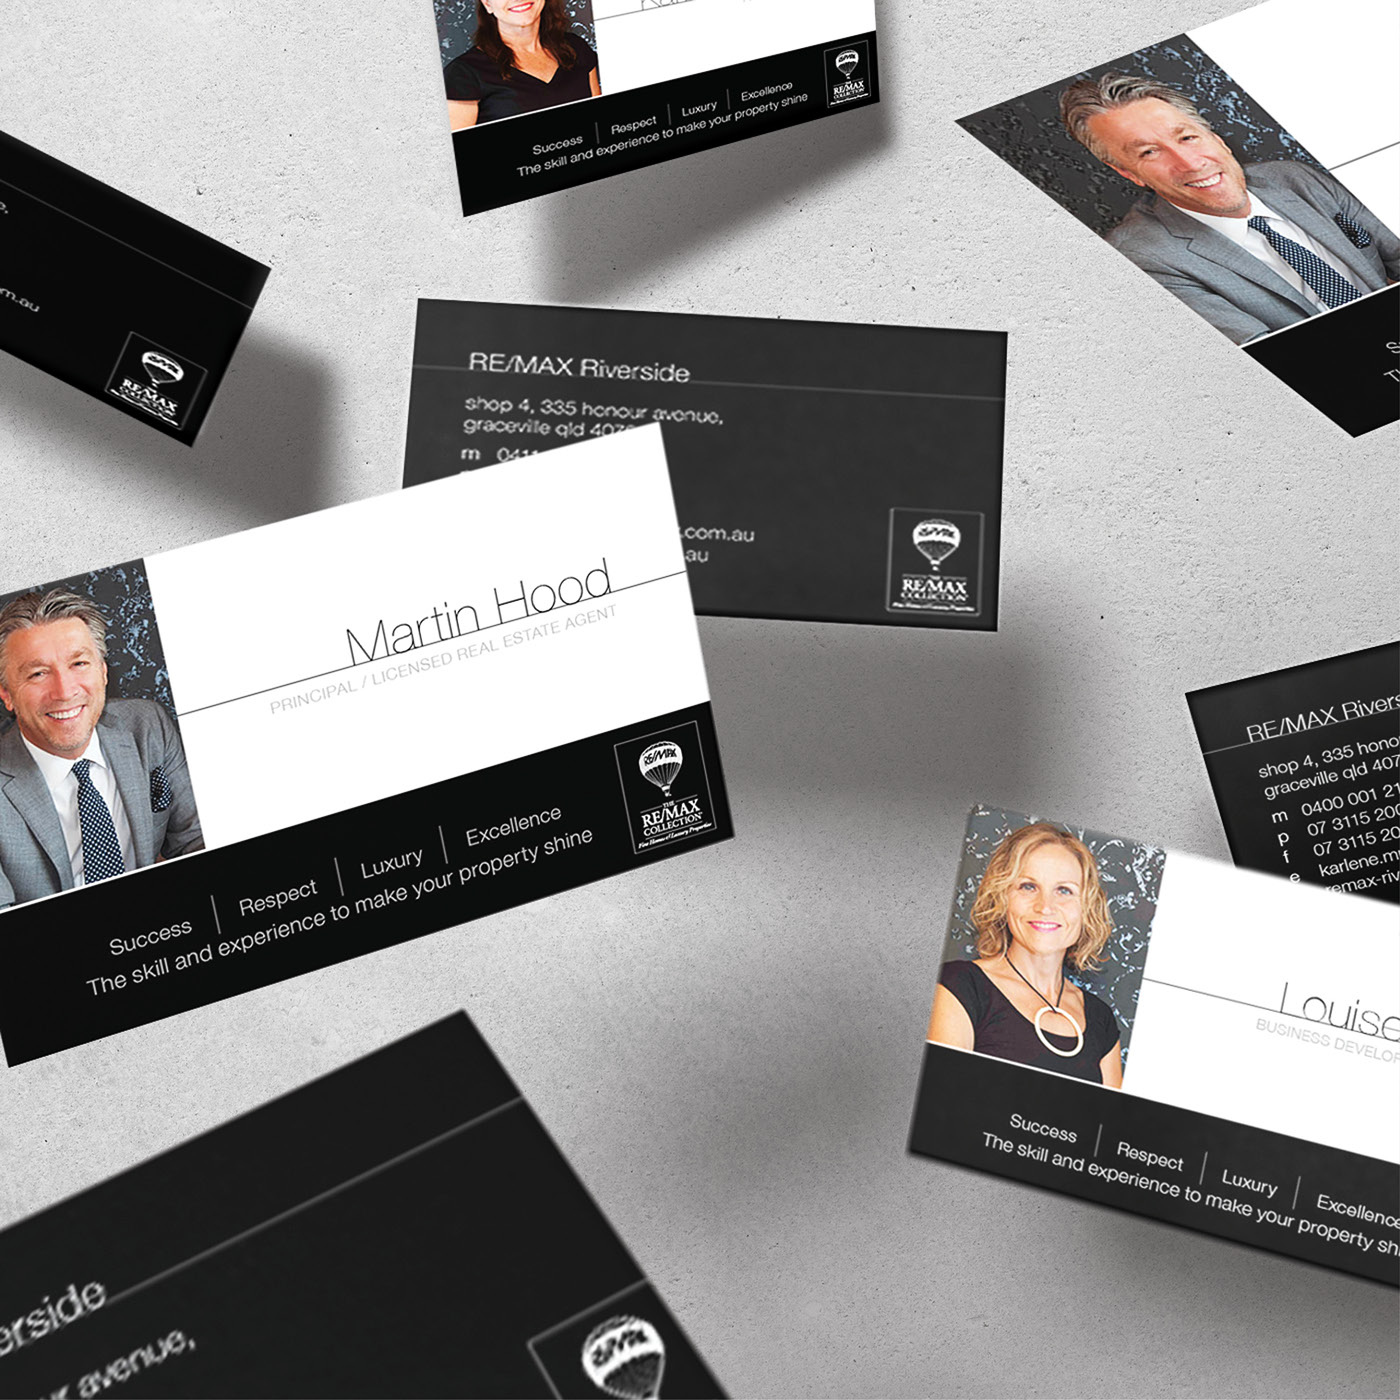 Remax collection office re brand on behance office with the re brand from belle real estate properties to remax while creating marketing collateral to be carried out across the remax network reheart Image collections